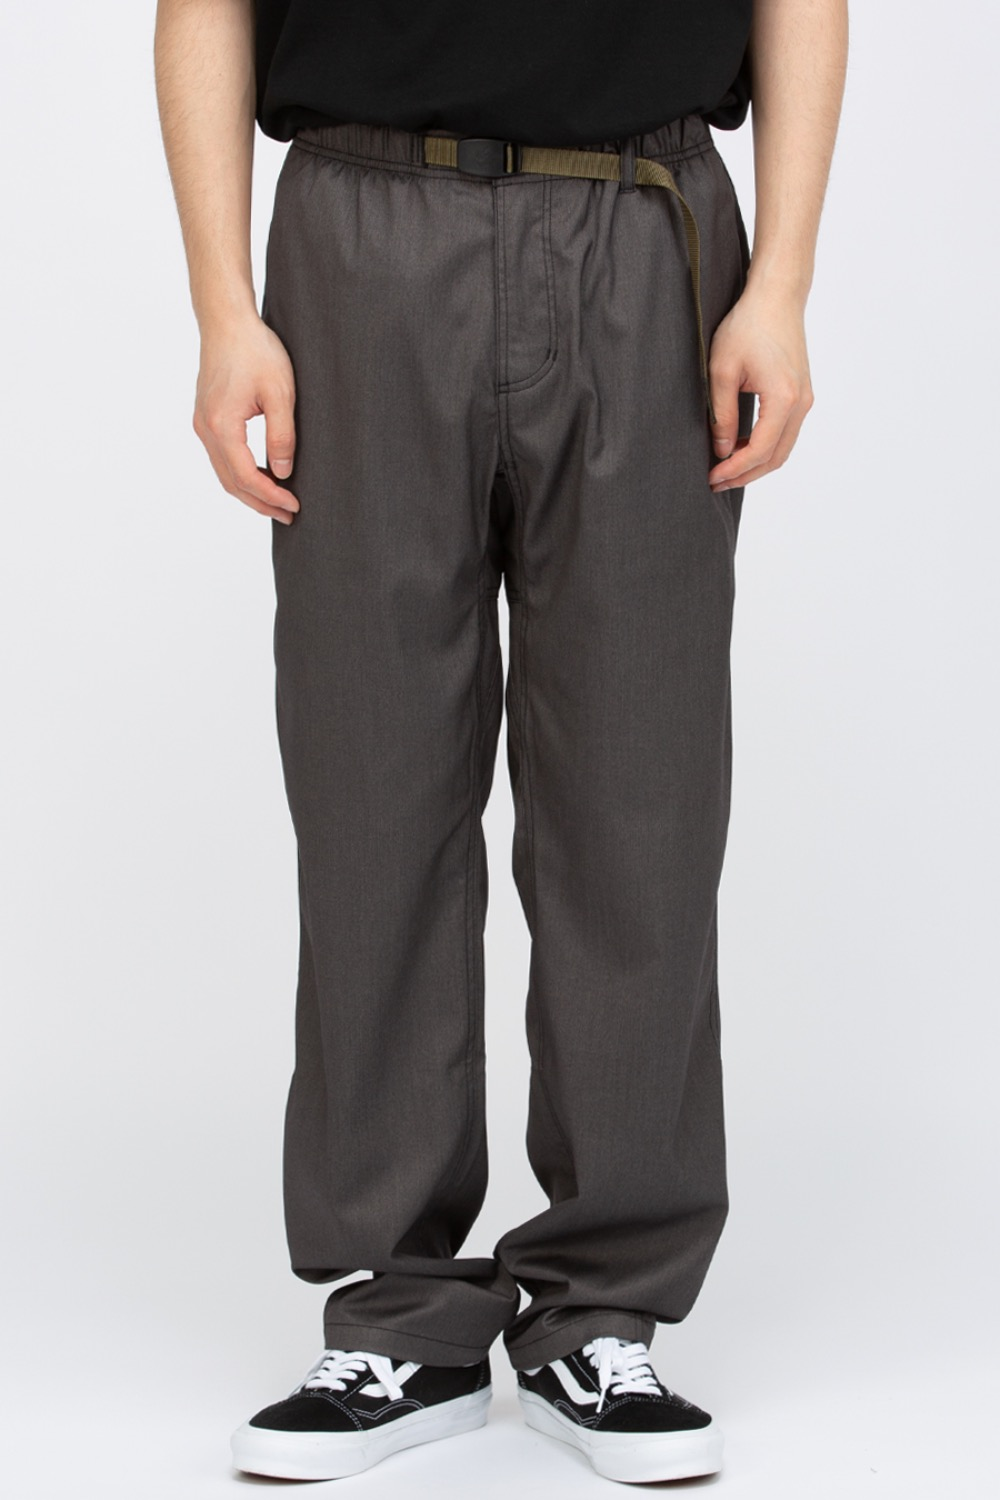 EASTLOGUE X GRAMICCI PANTS CHARCOAL